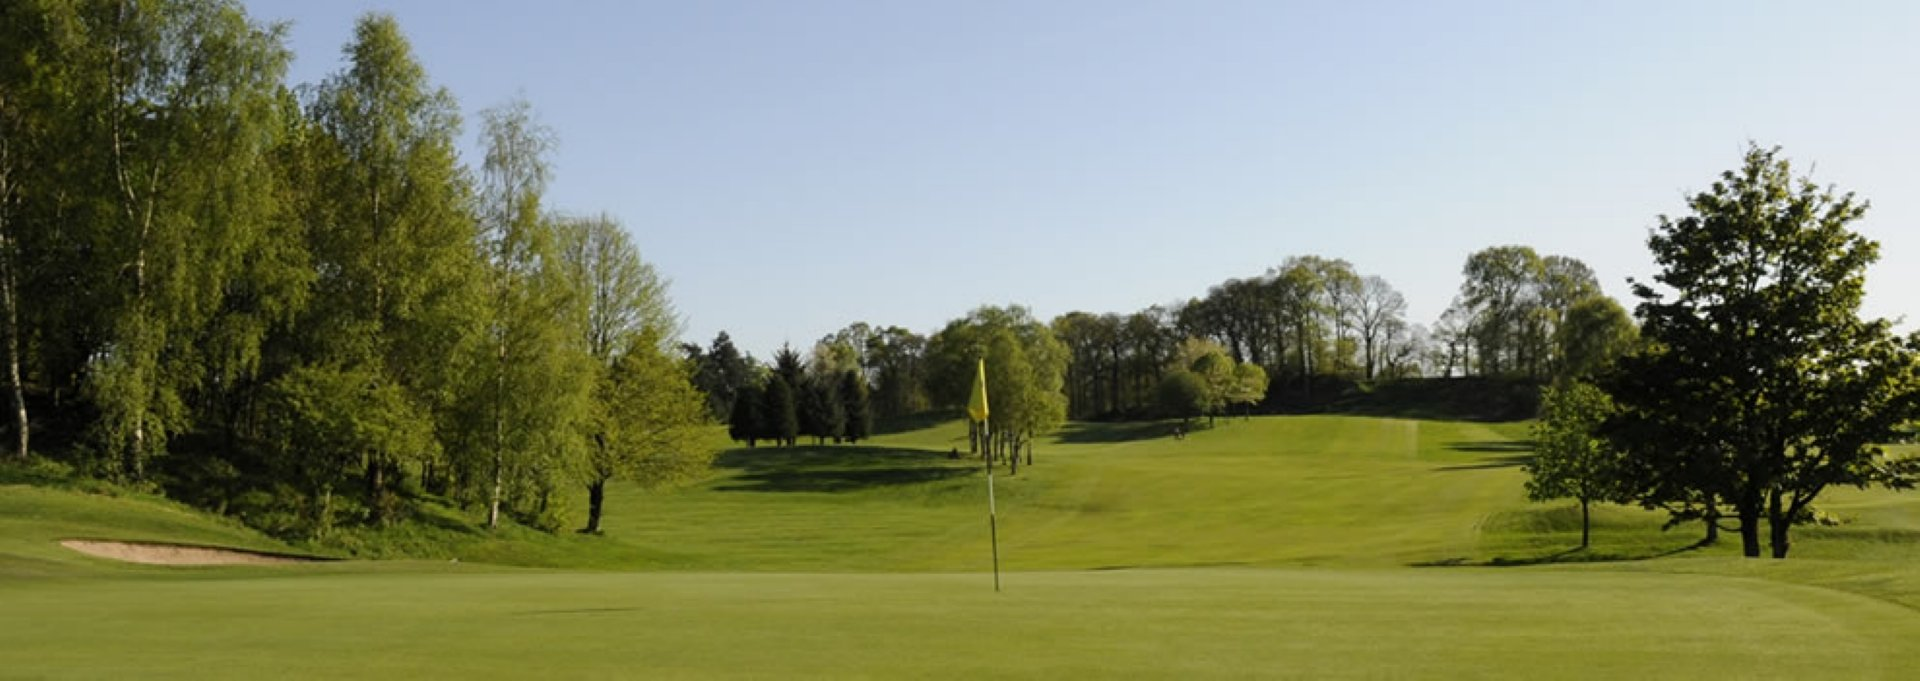 Gateway to Golf pass offers excellent value for money golfing breaks, The Cairndale Hotel.